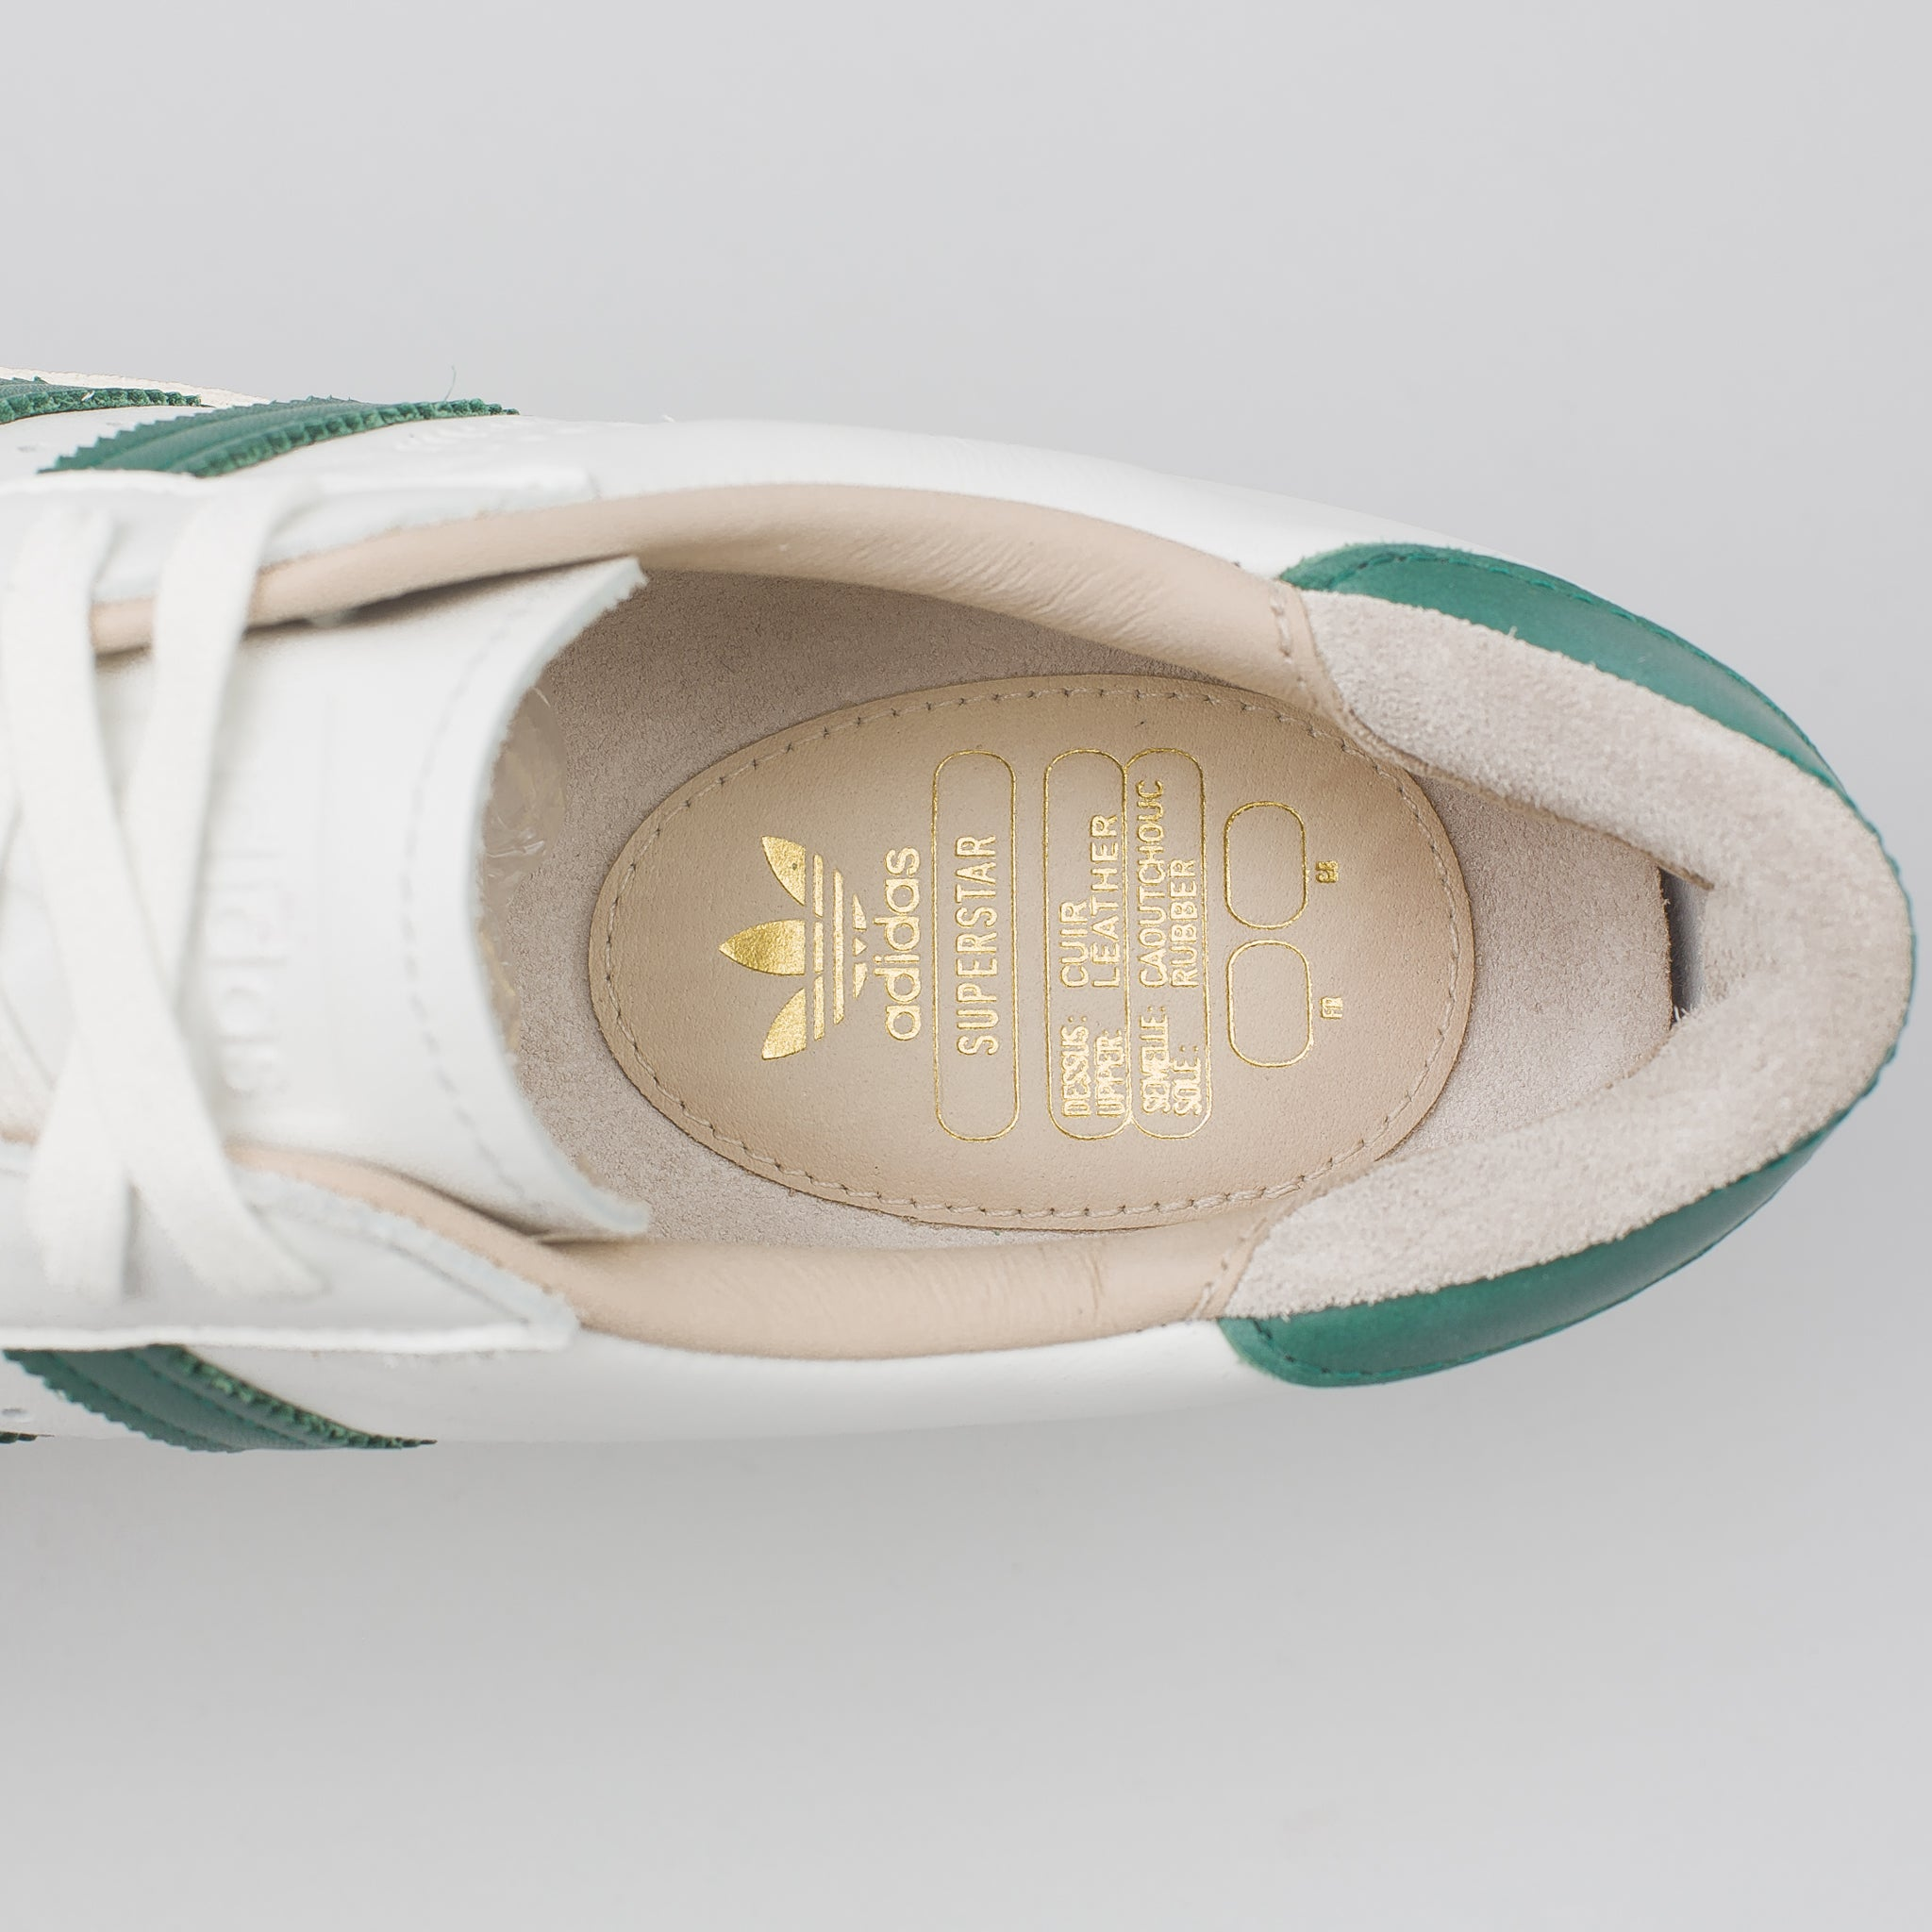 Superstar 80s Recon in White/Green